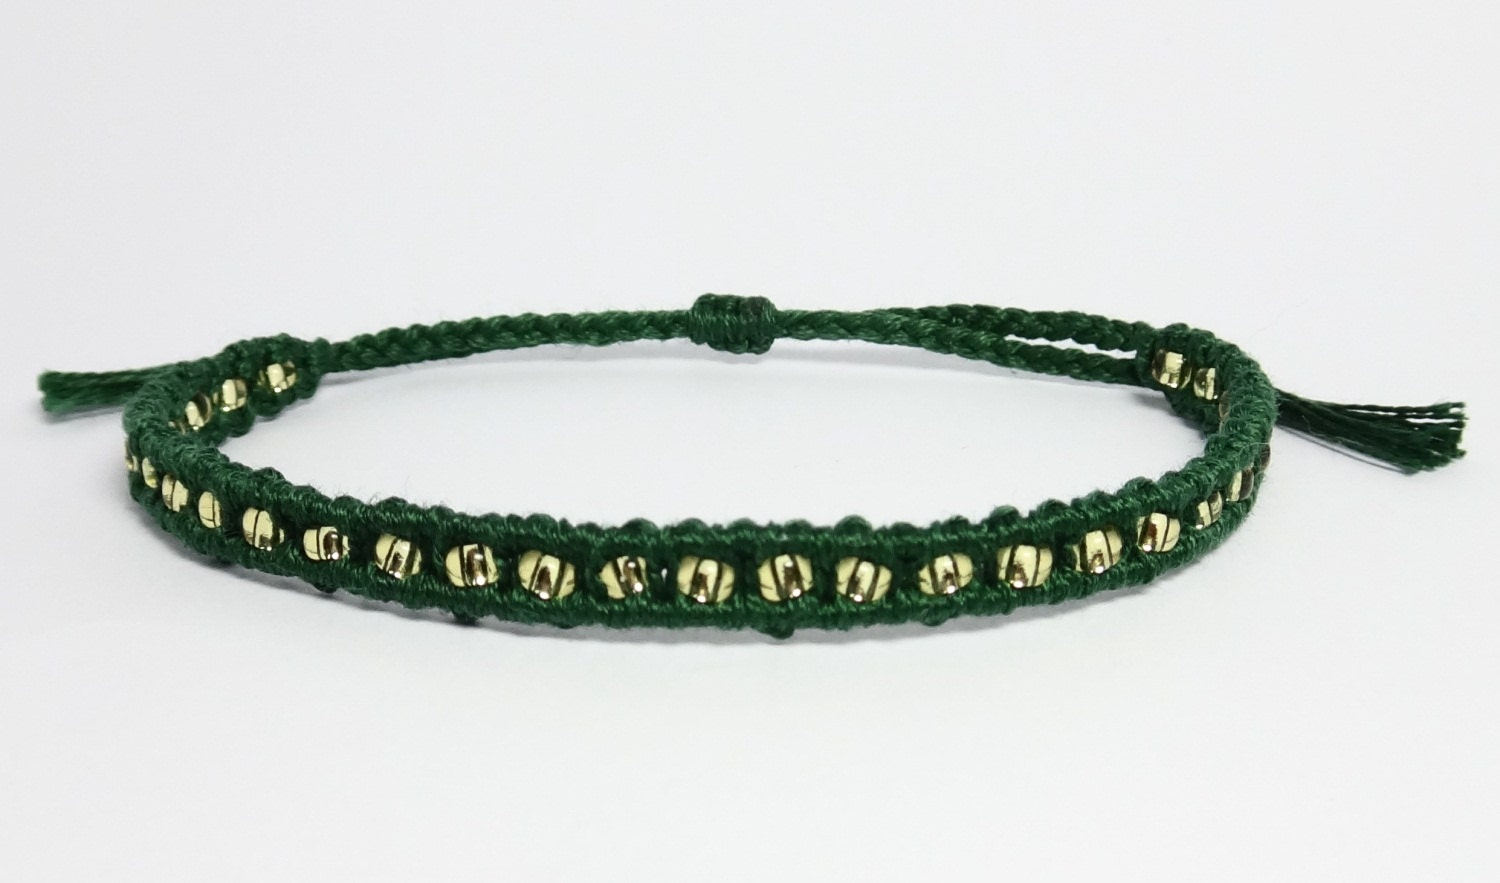 Loki Inspired Friendship Bracelets-Beaded Macrame Bracelet